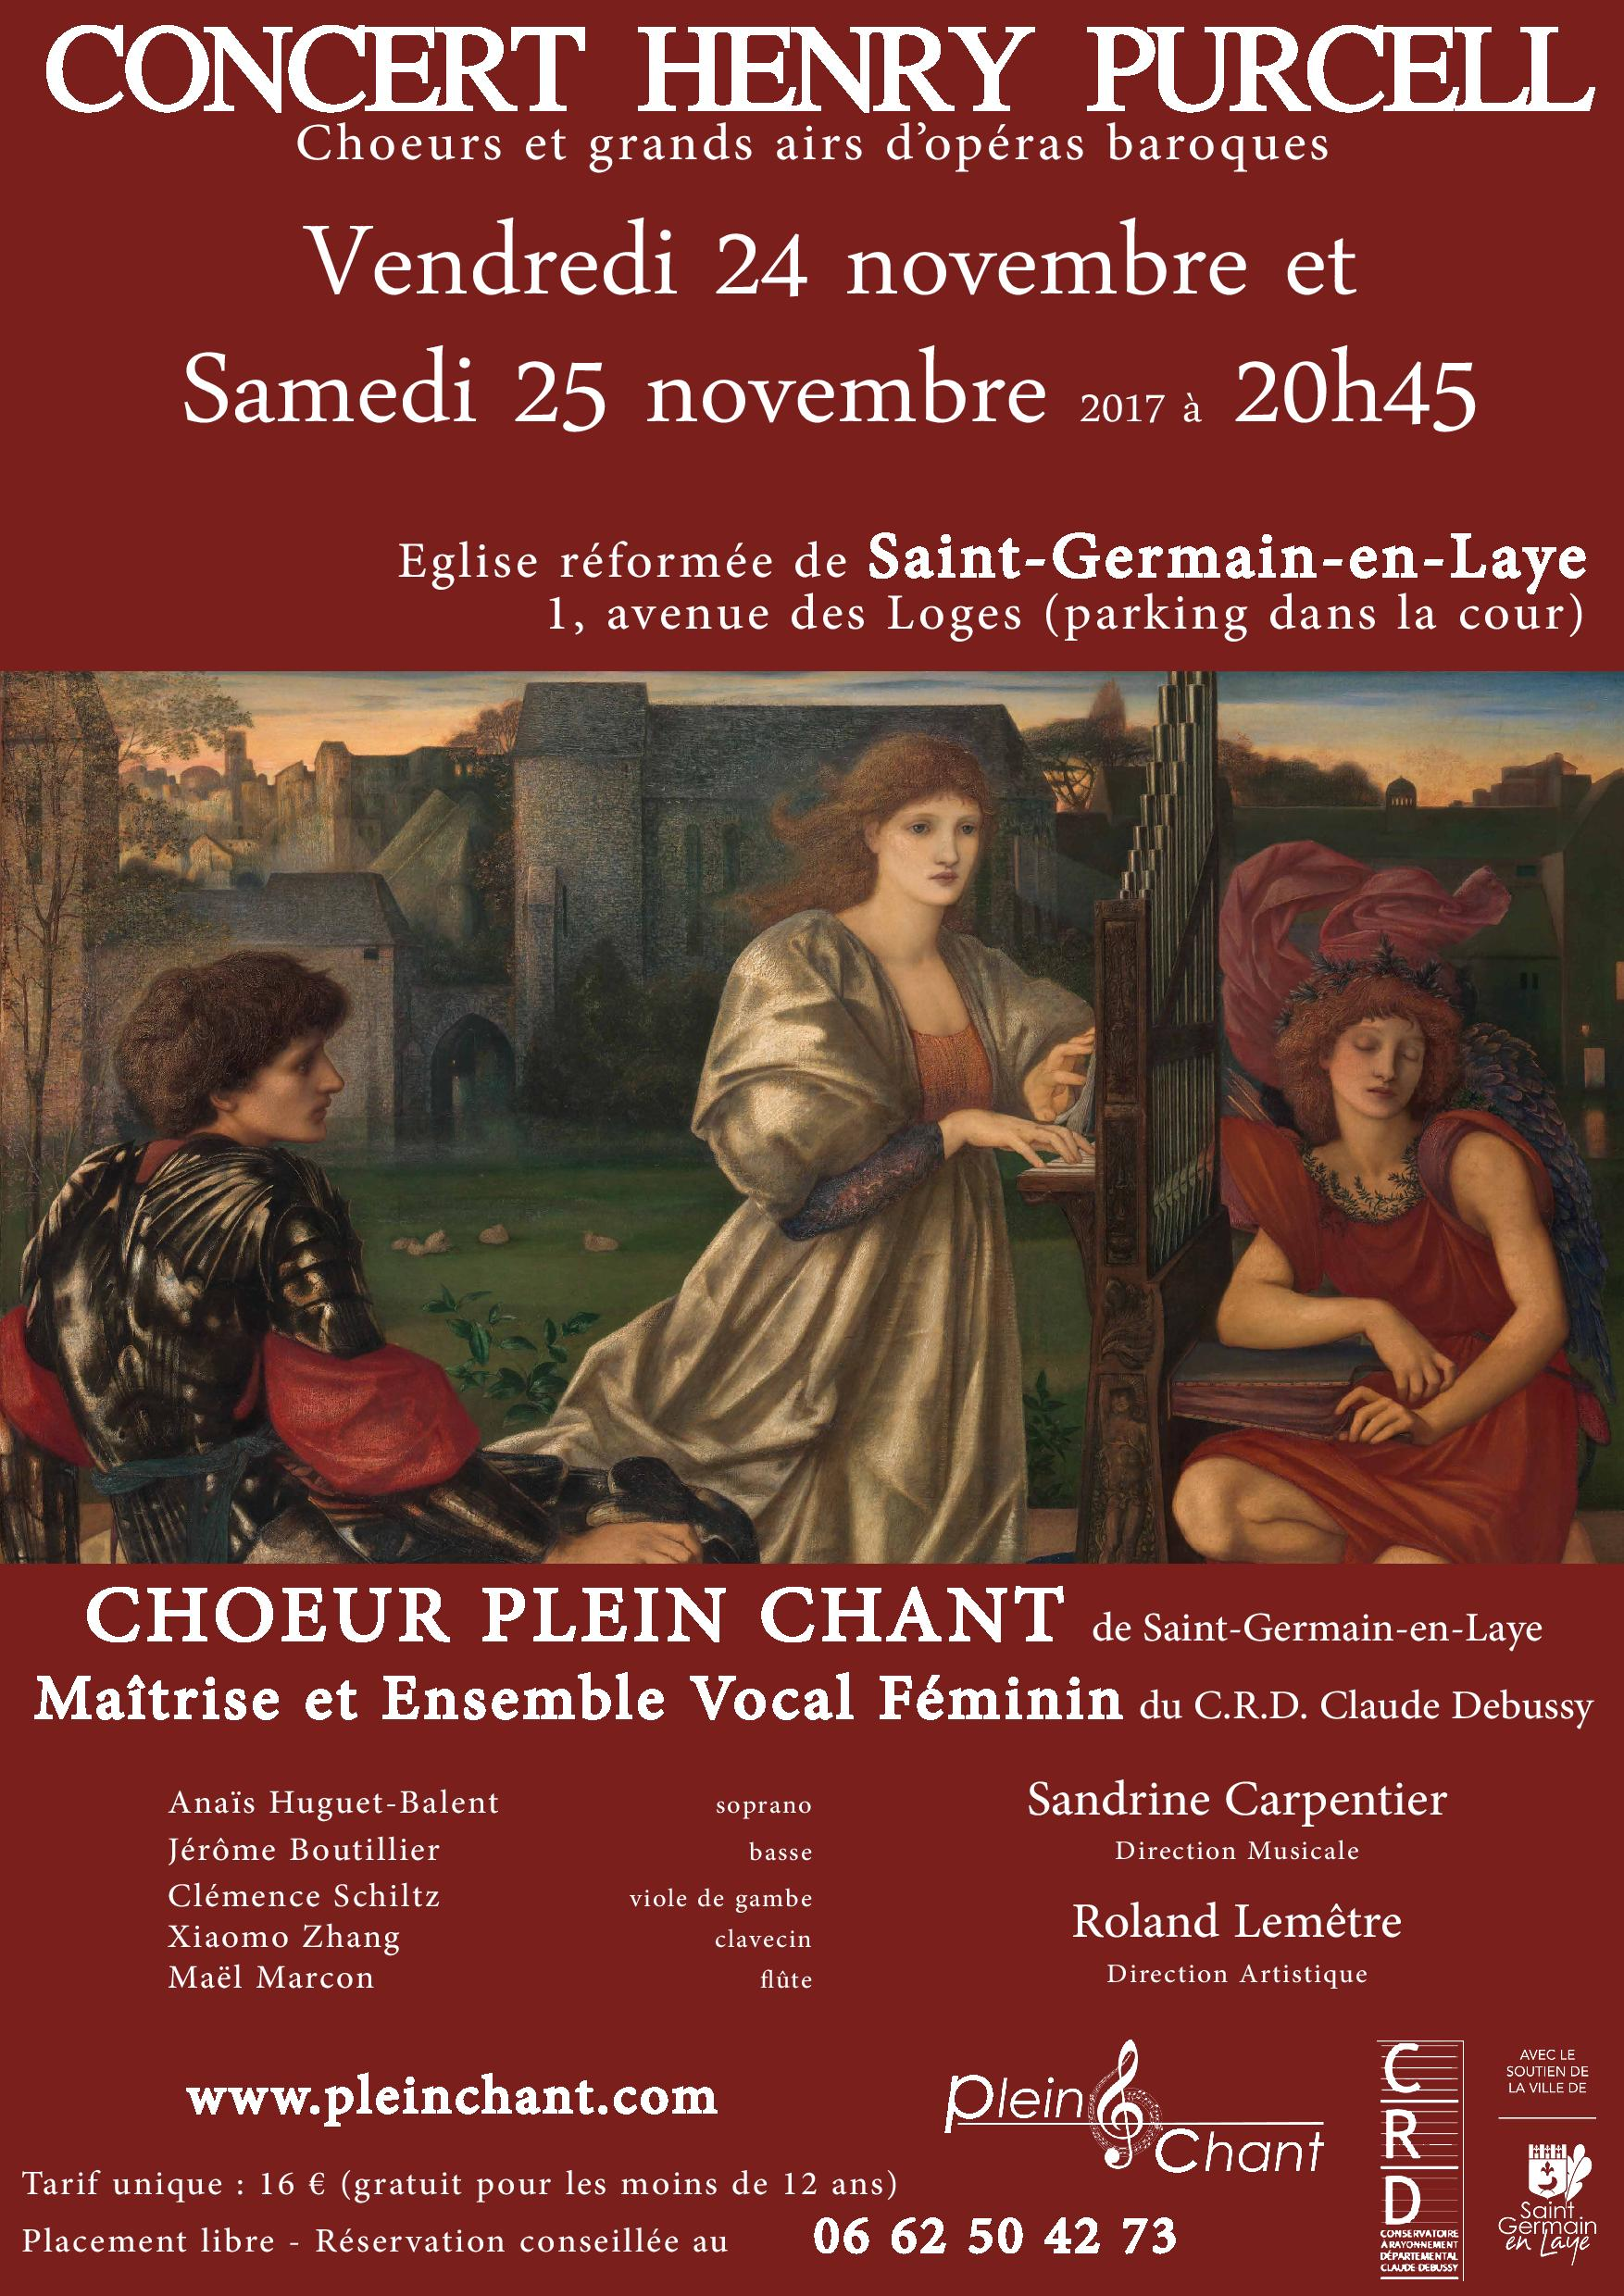 Concert Henry Purcell